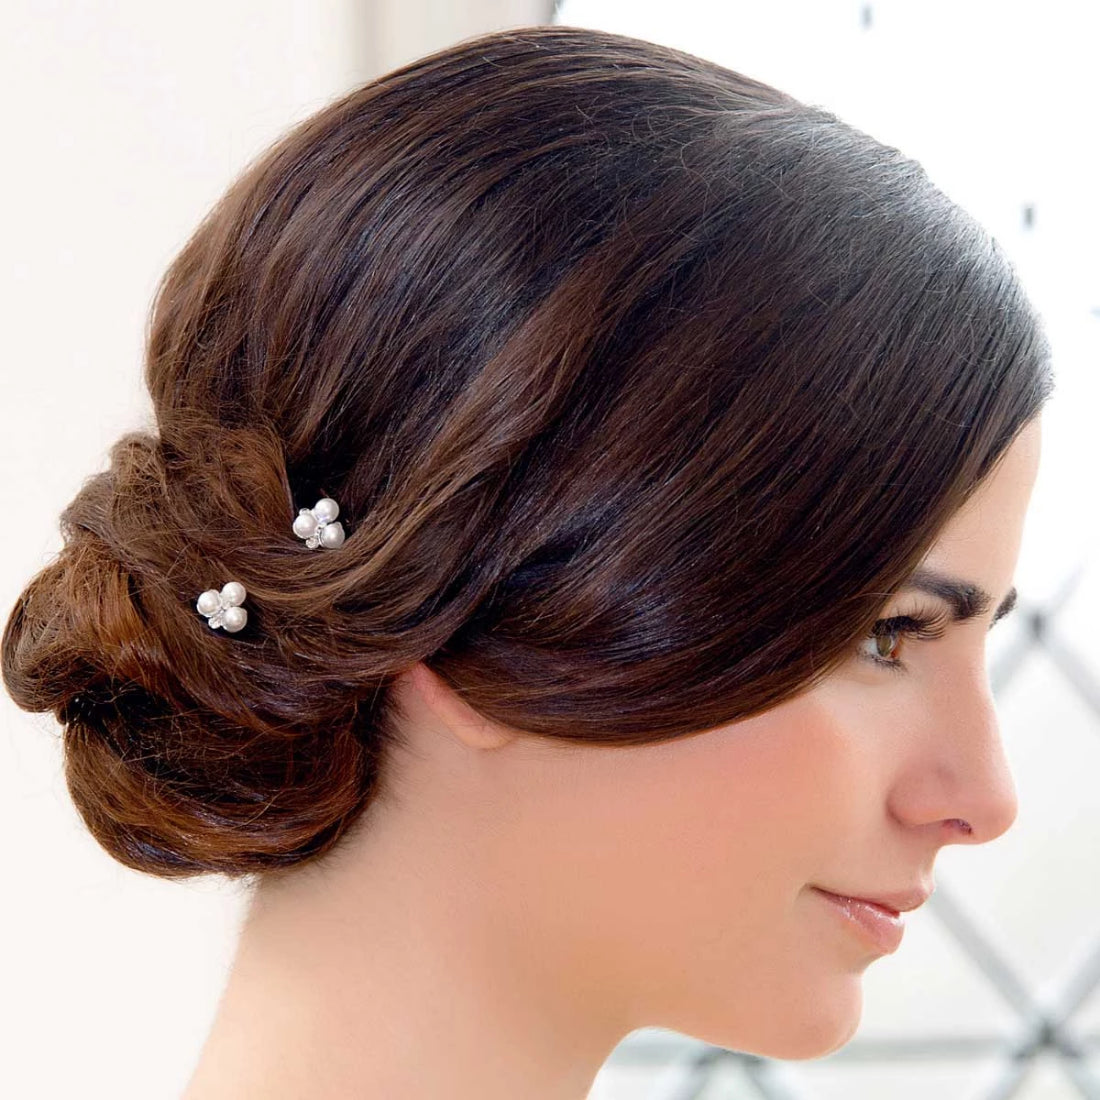 Simply Pearl Hair Pins shown in a side chignon hairstyle